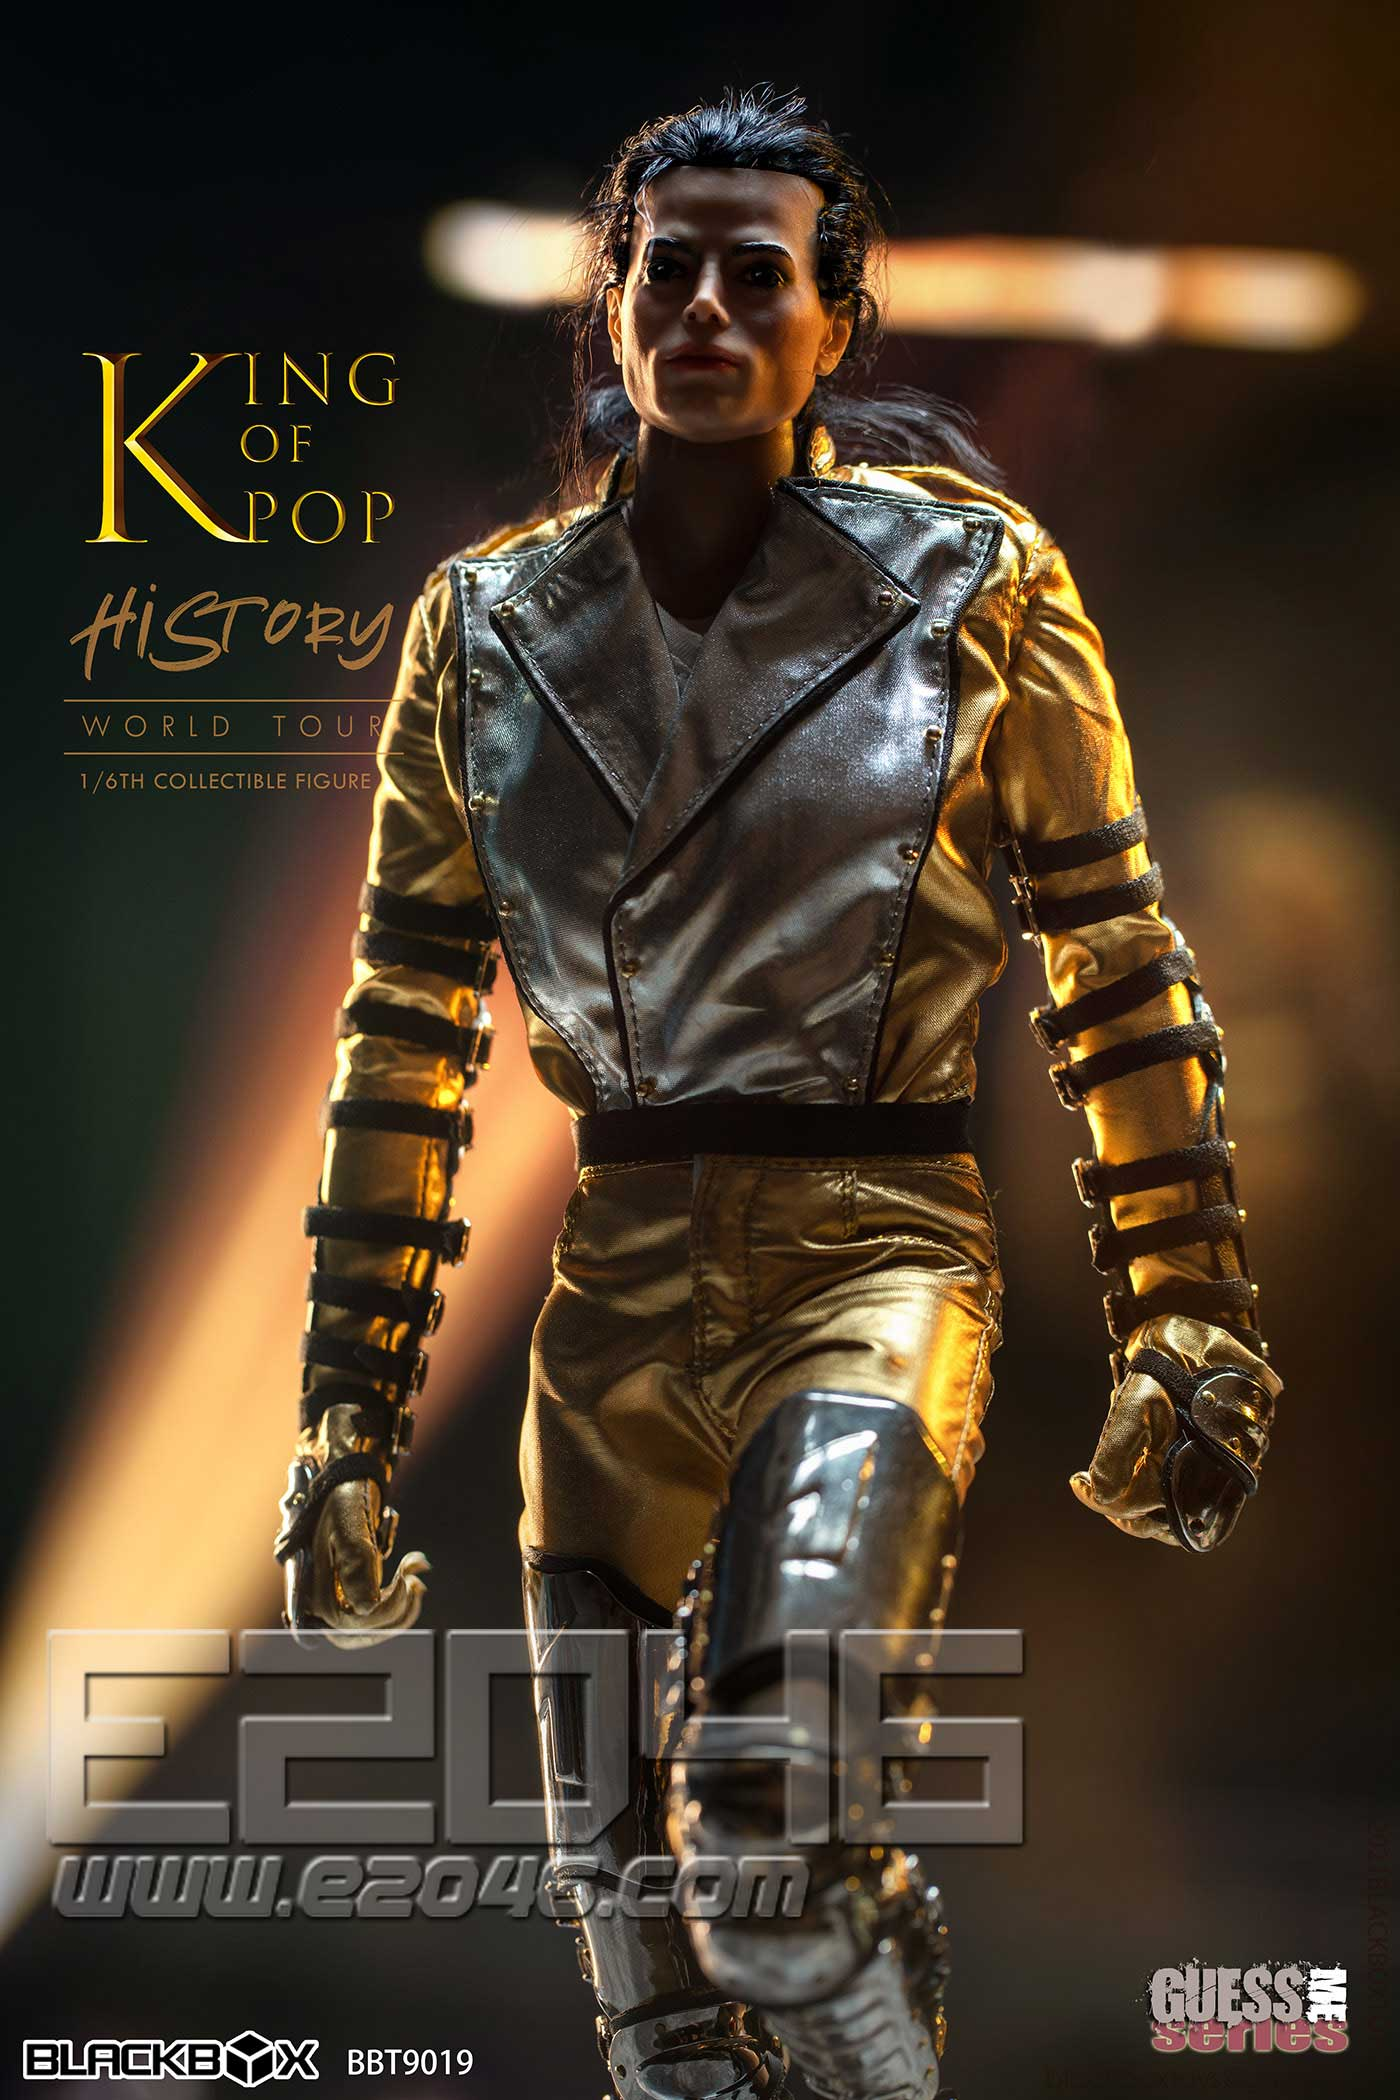 The History World Tour (DOLL)